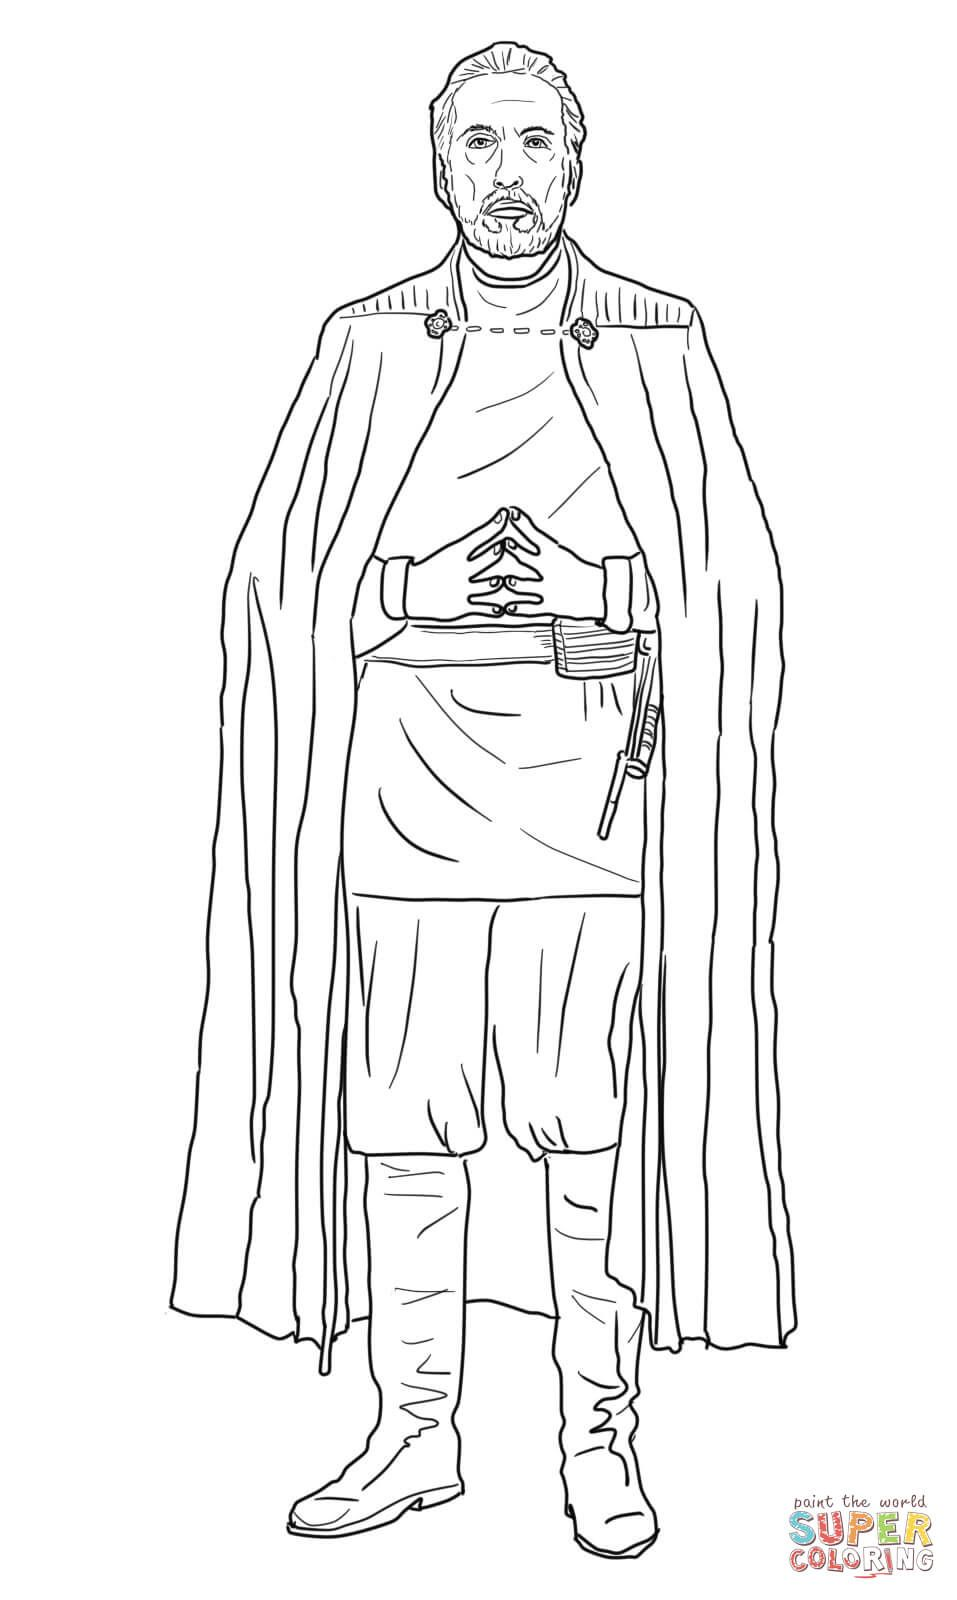 Count Dooku Super Coloring Star Wars Drawings Star Wars Images Sailor Moon Coloring Pages